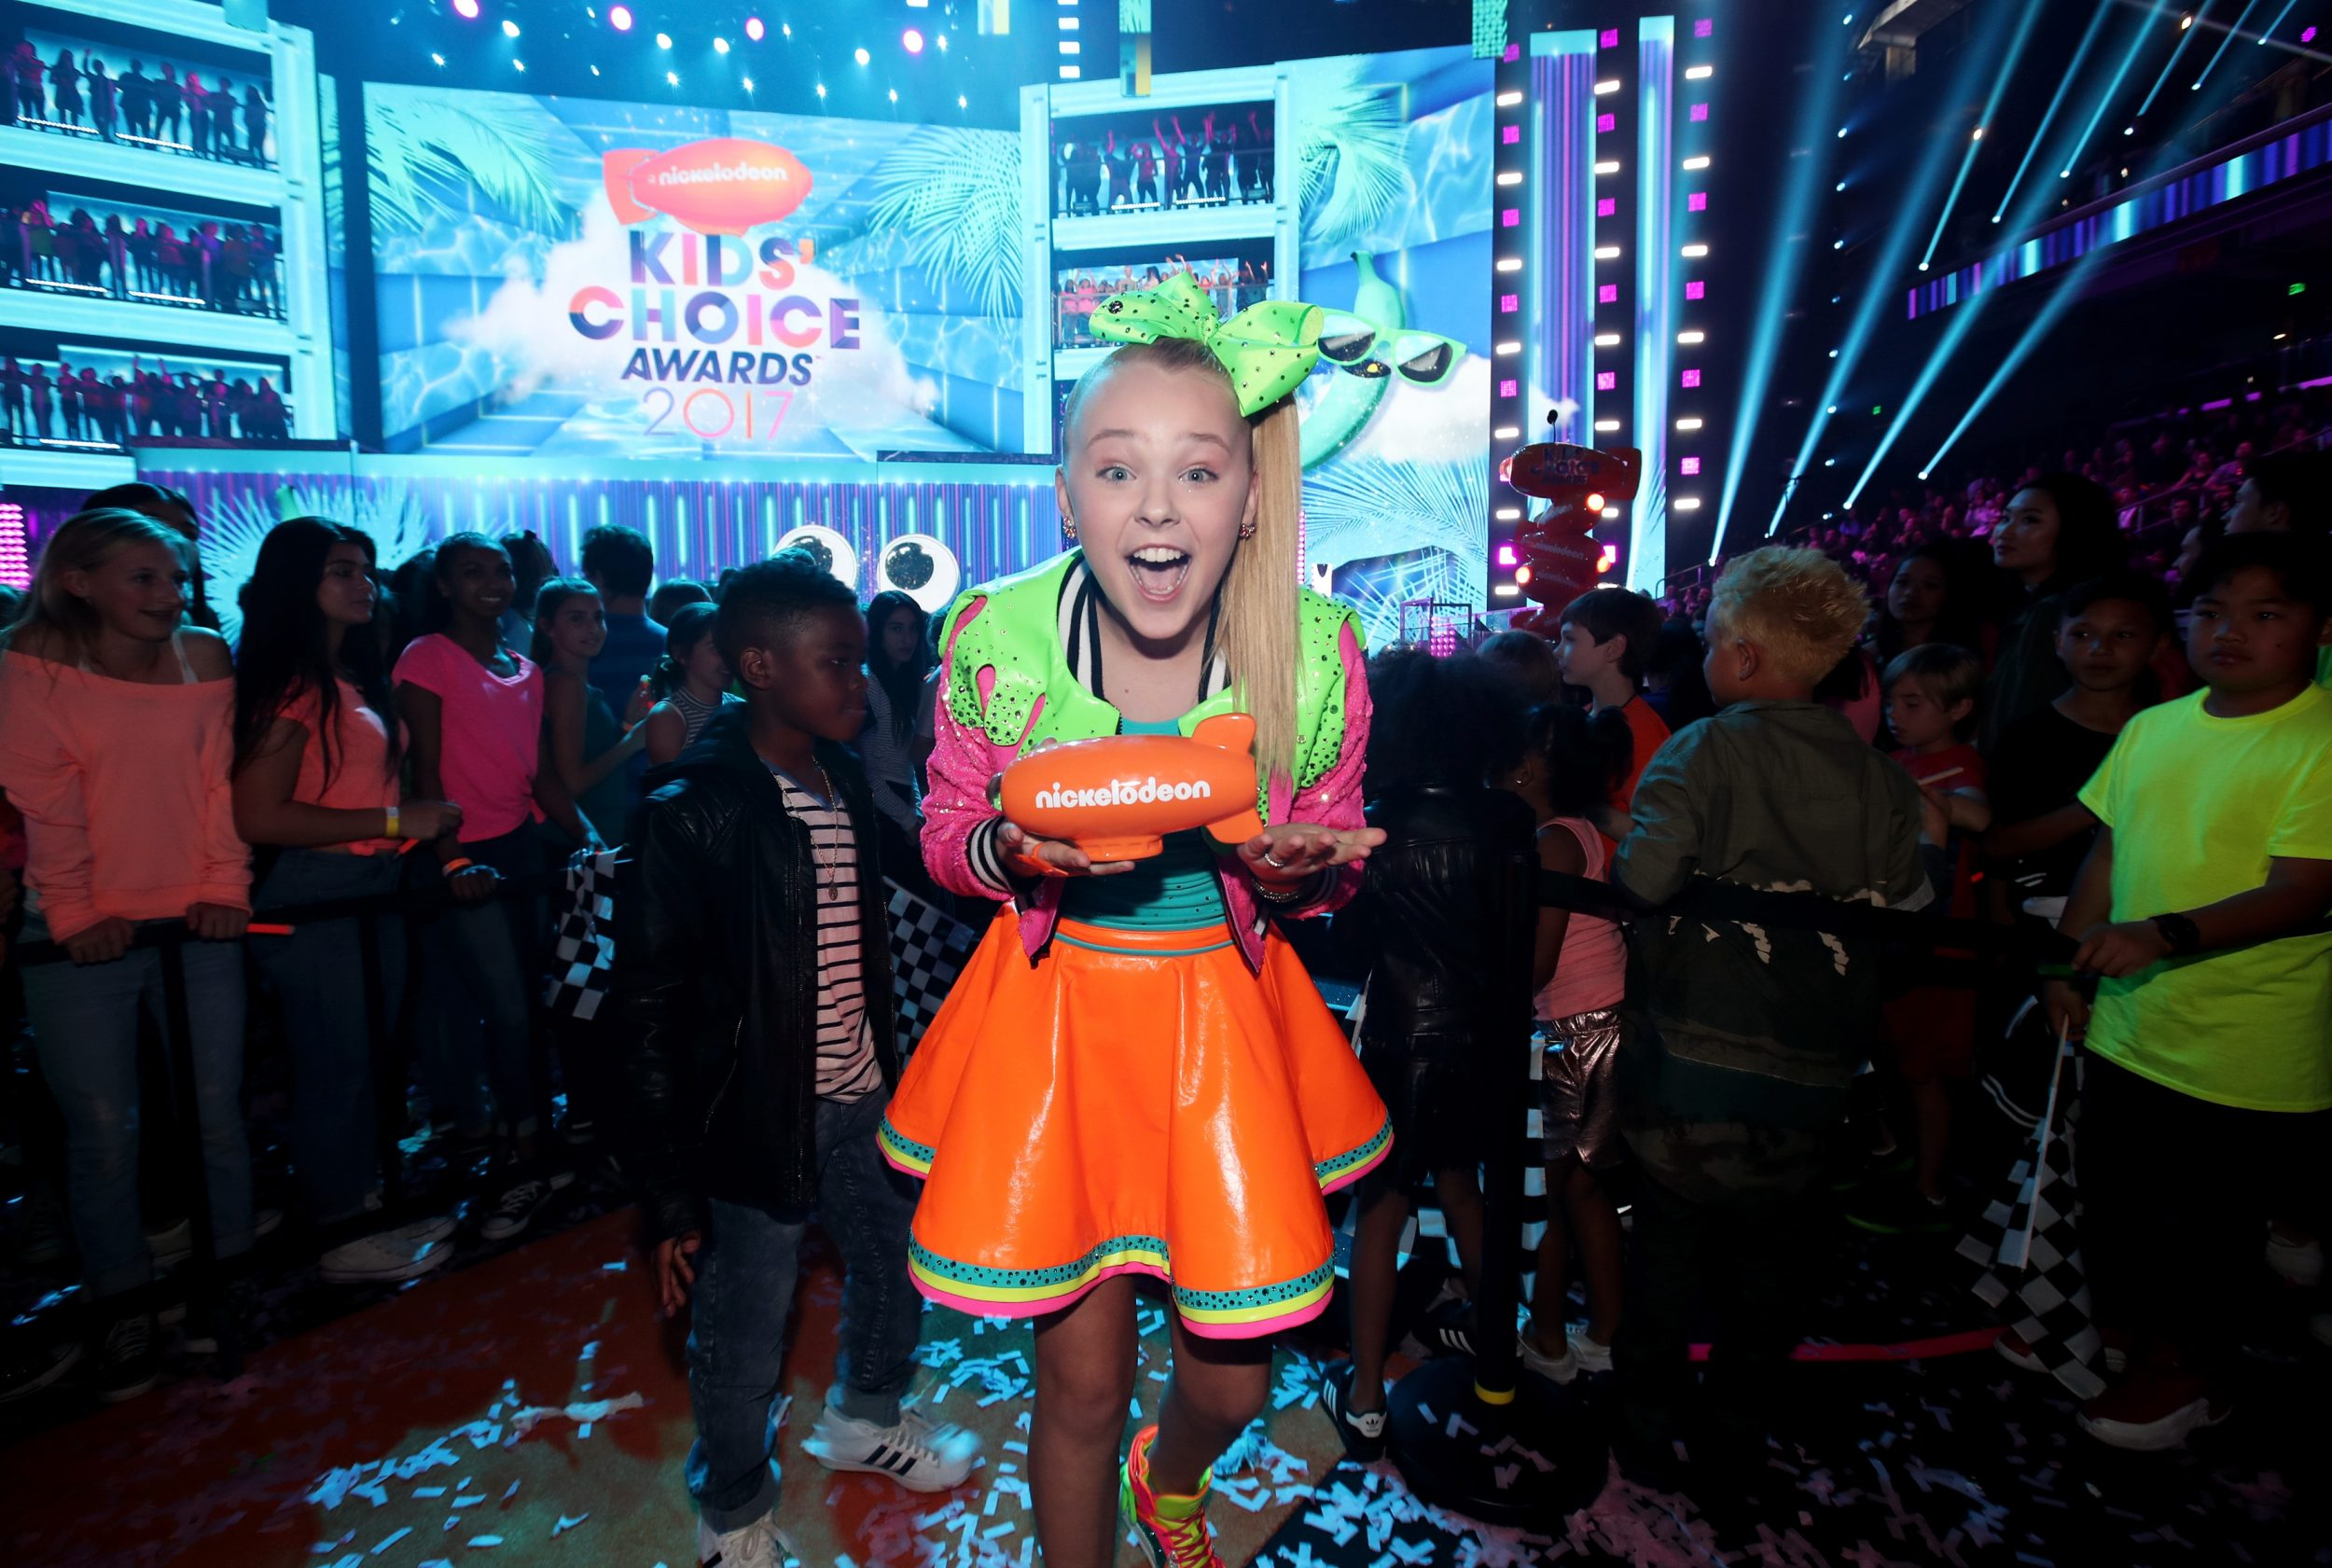 LOS ANGELES, CA - MARCH 11:  Internet personality JoJo Siwa, winner of Favorite Viral Artist, at Nickelodeon's 2017 Kids' Choice Awards at USC Galen Center on March 11, 2017 in Los Angeles, California.  (Photo by Chris Polk/KCA2017/Getty Images for Nickelodeon - Issued to Media by Nickelodeon)